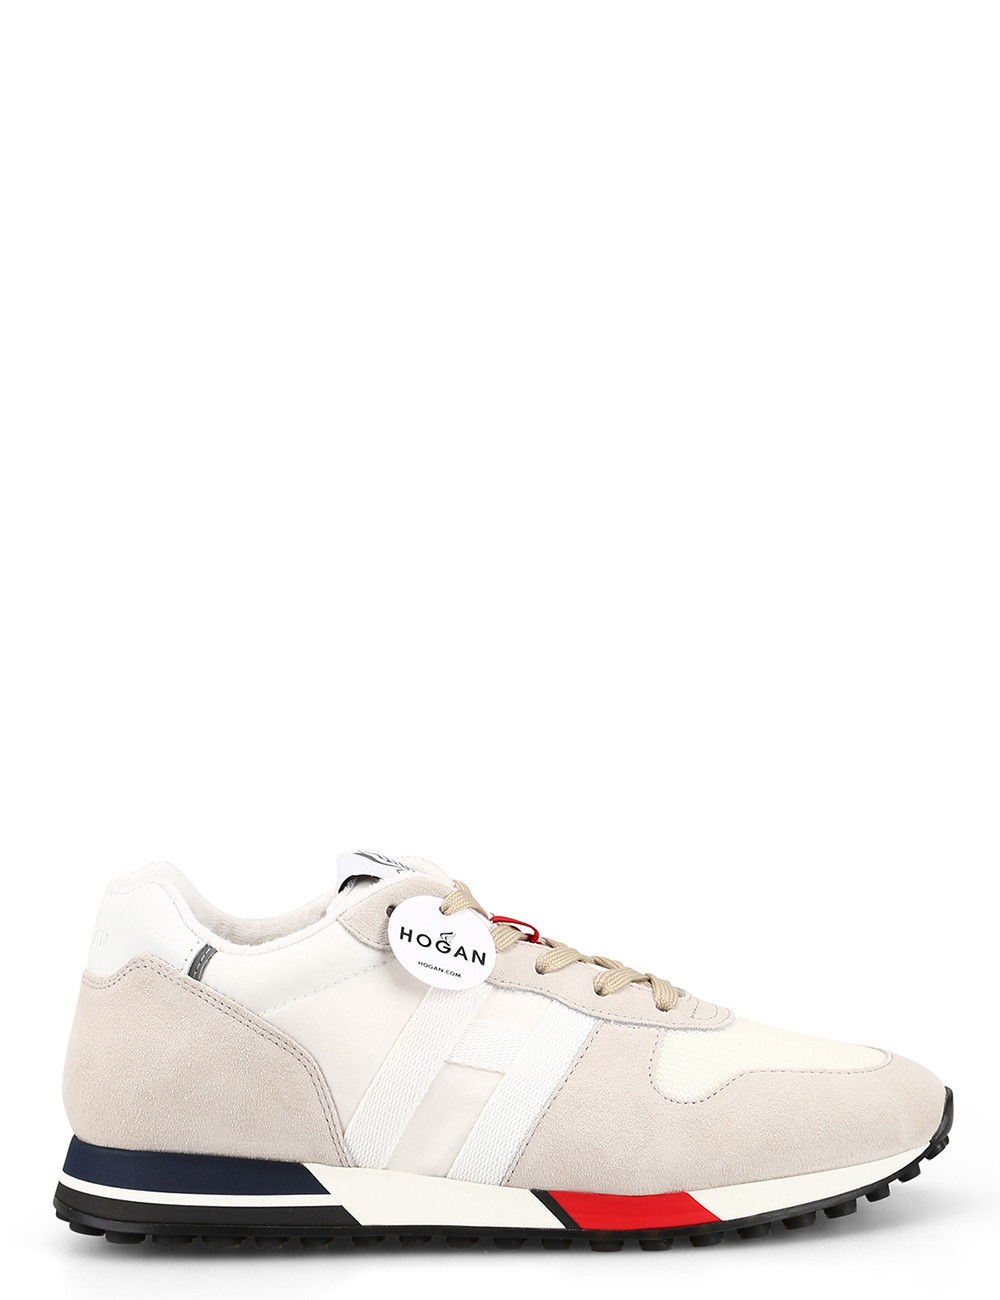 Sneakers H383 Bianco Rosso